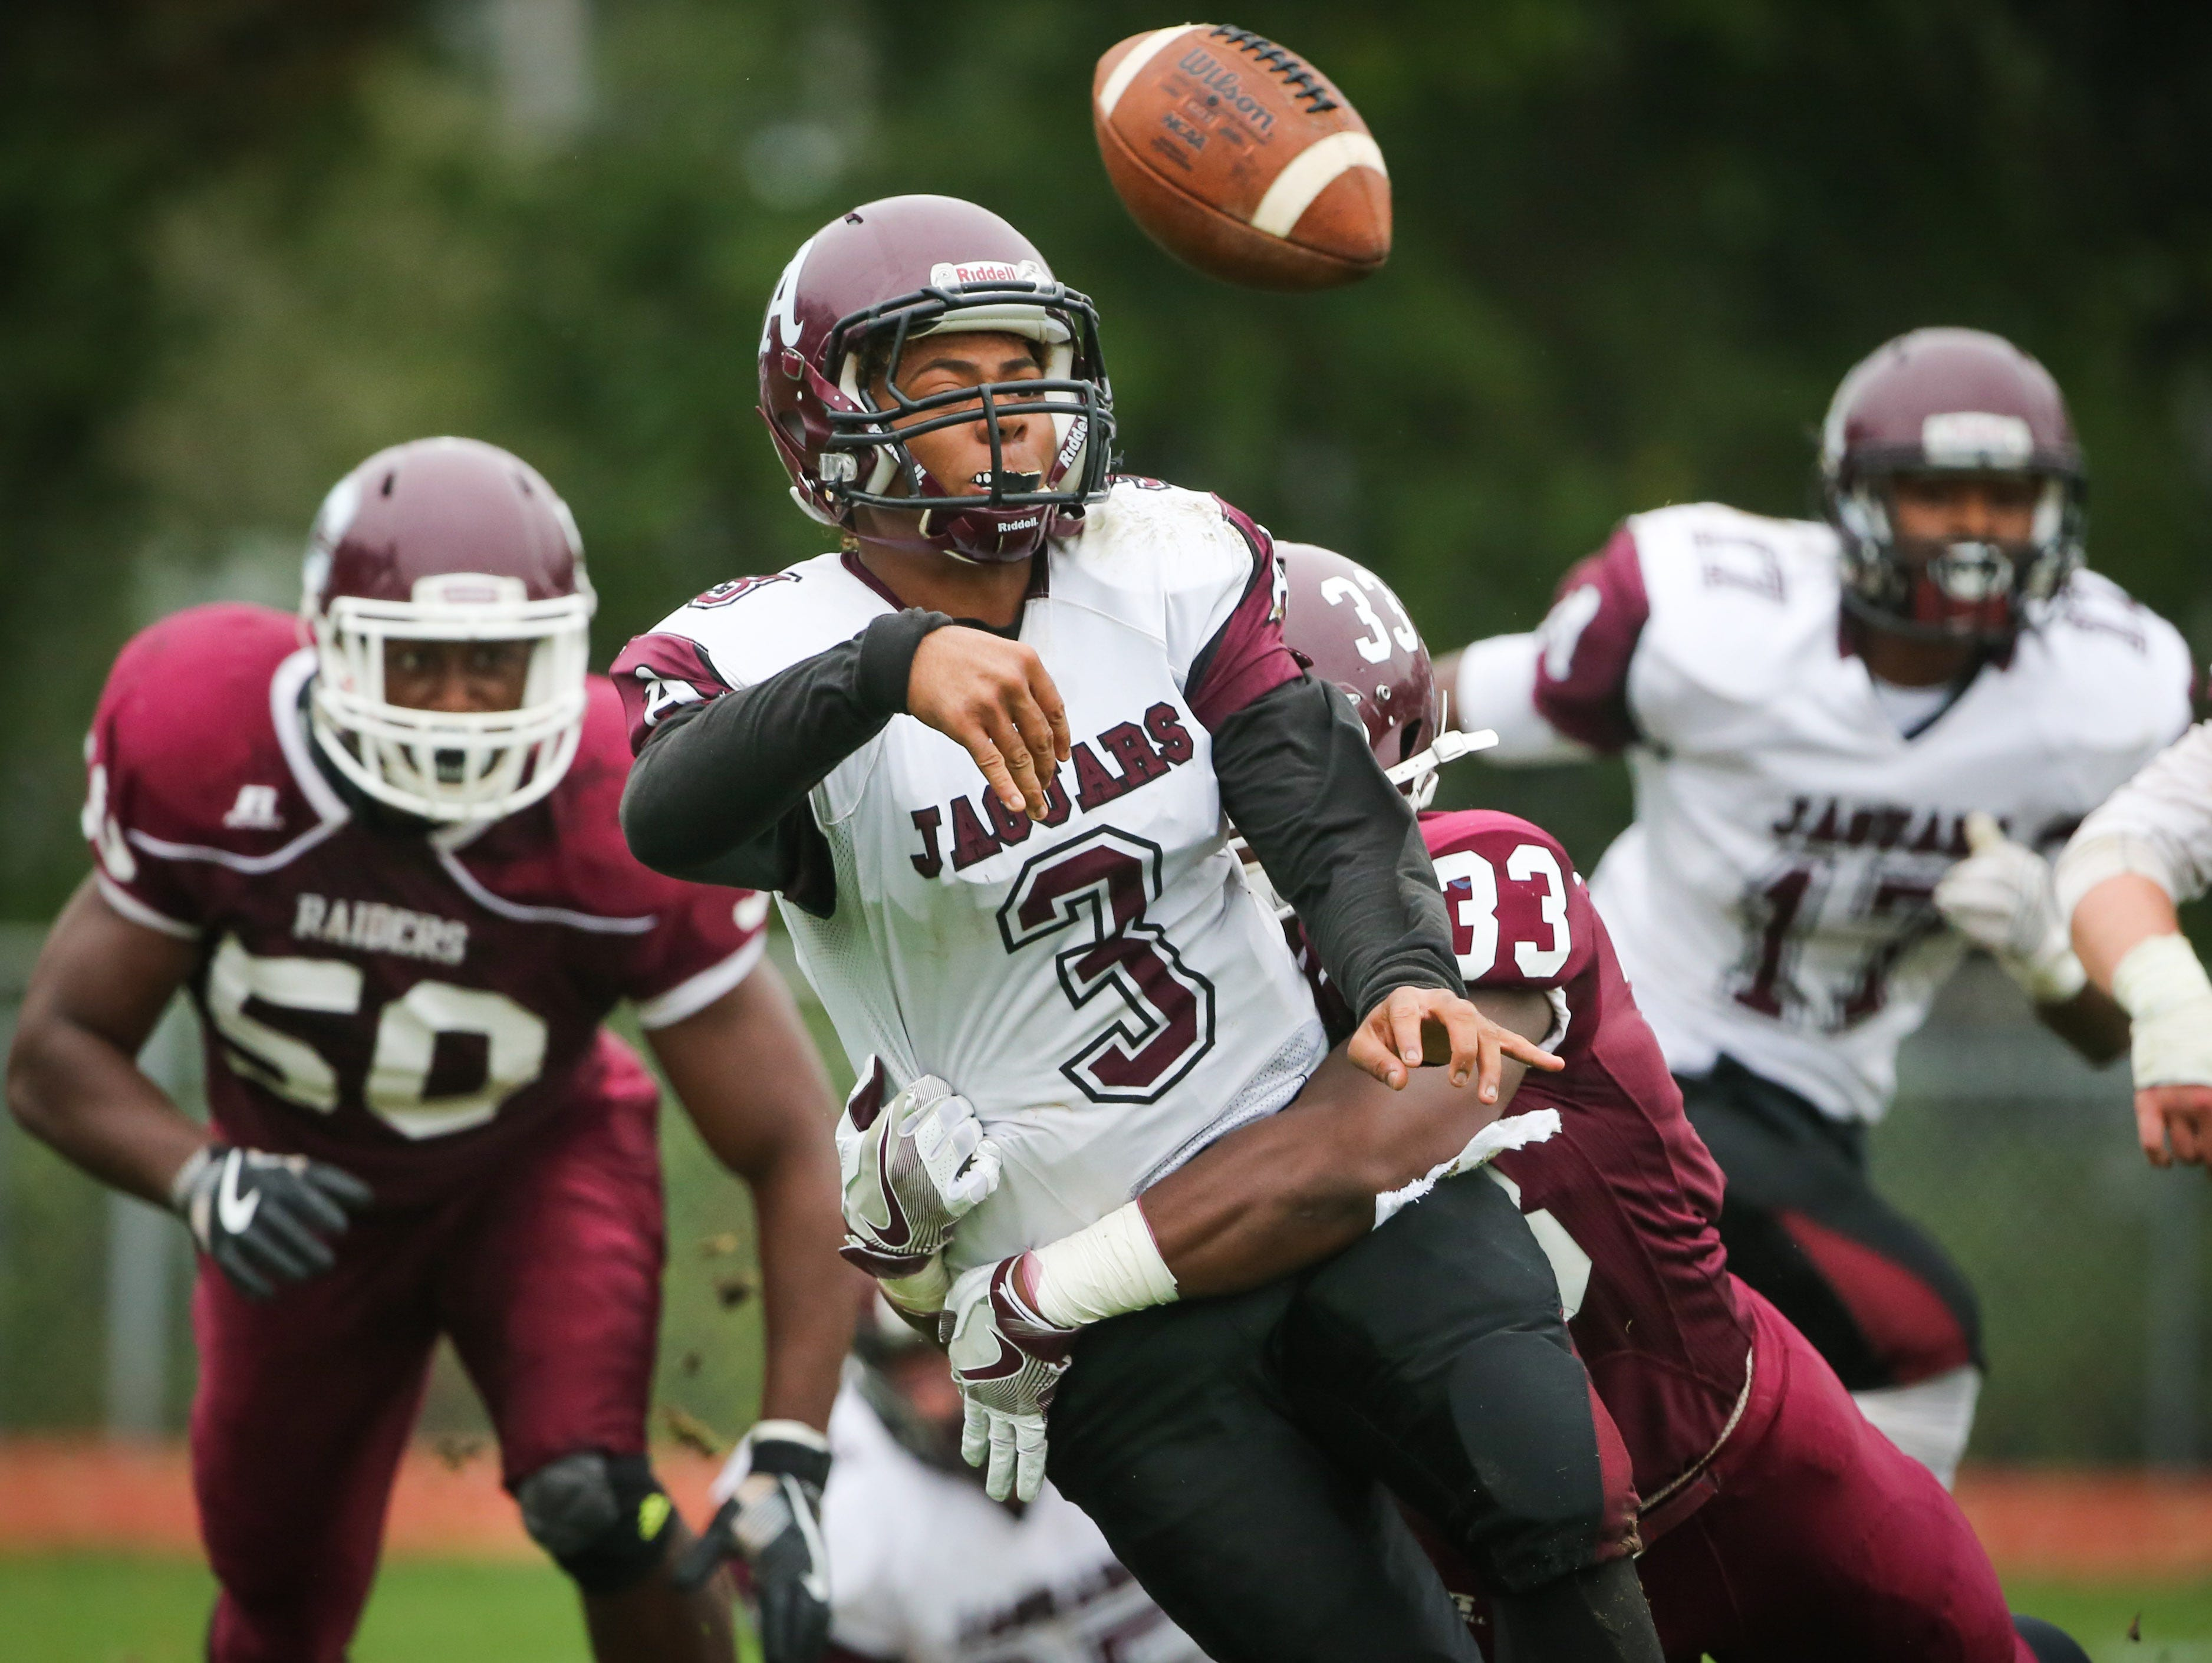 Concord's Byron Simpson hits Appoquinimink quarterback Kenyon Yellowdy as Yellowdy gets rid of the ball. The Raider defense held the Cougars scoreless in a 30-0 win.